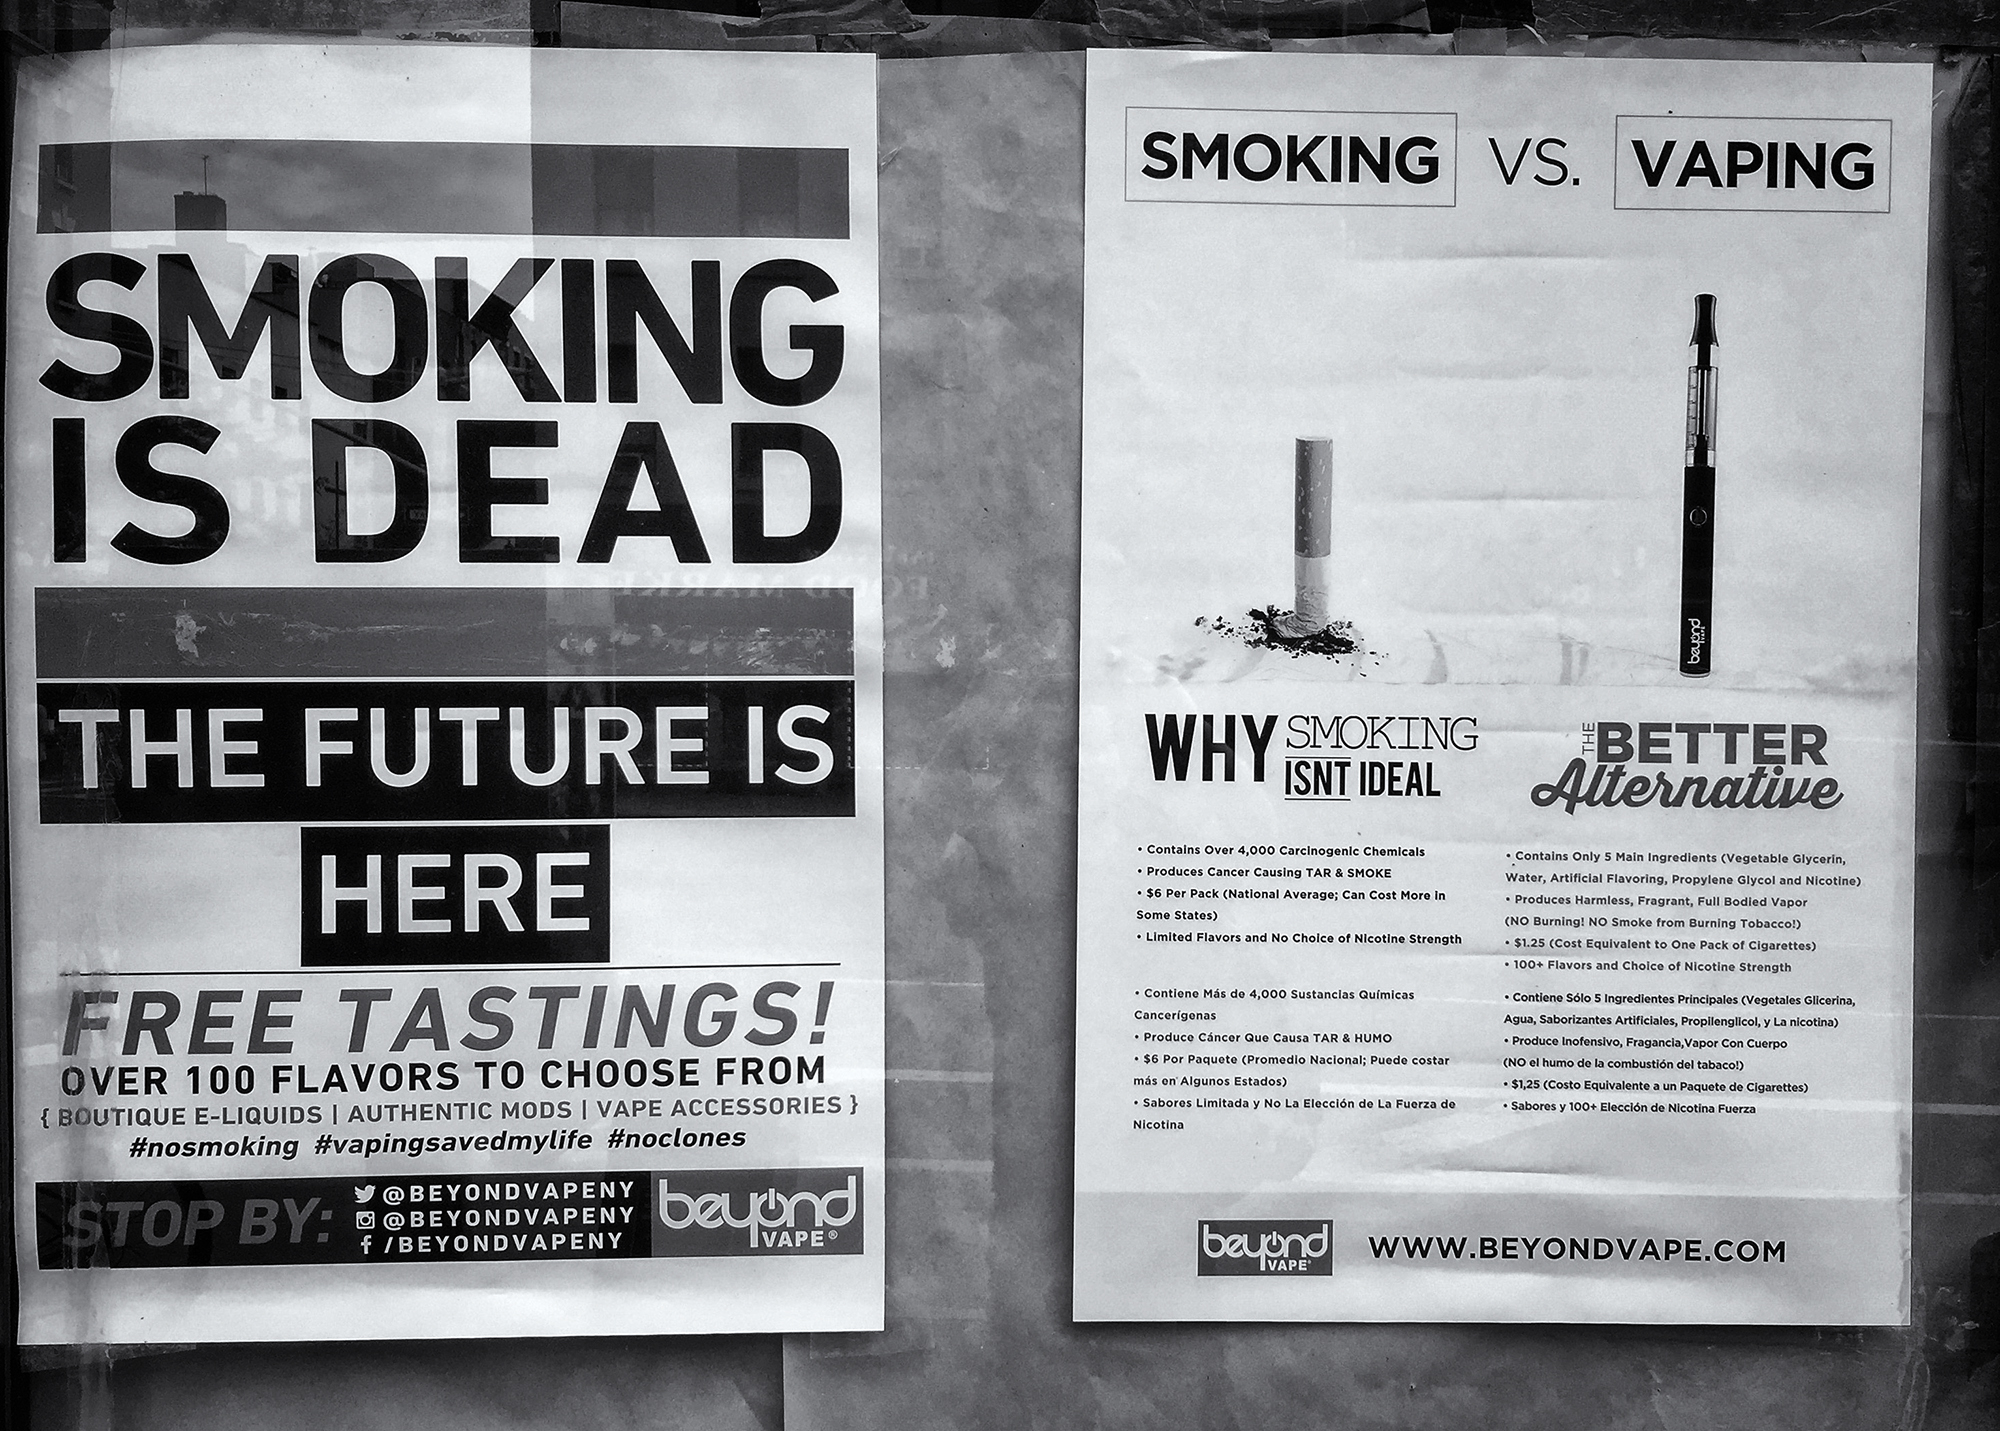 Smoking vs Vaping. NYC, 2015